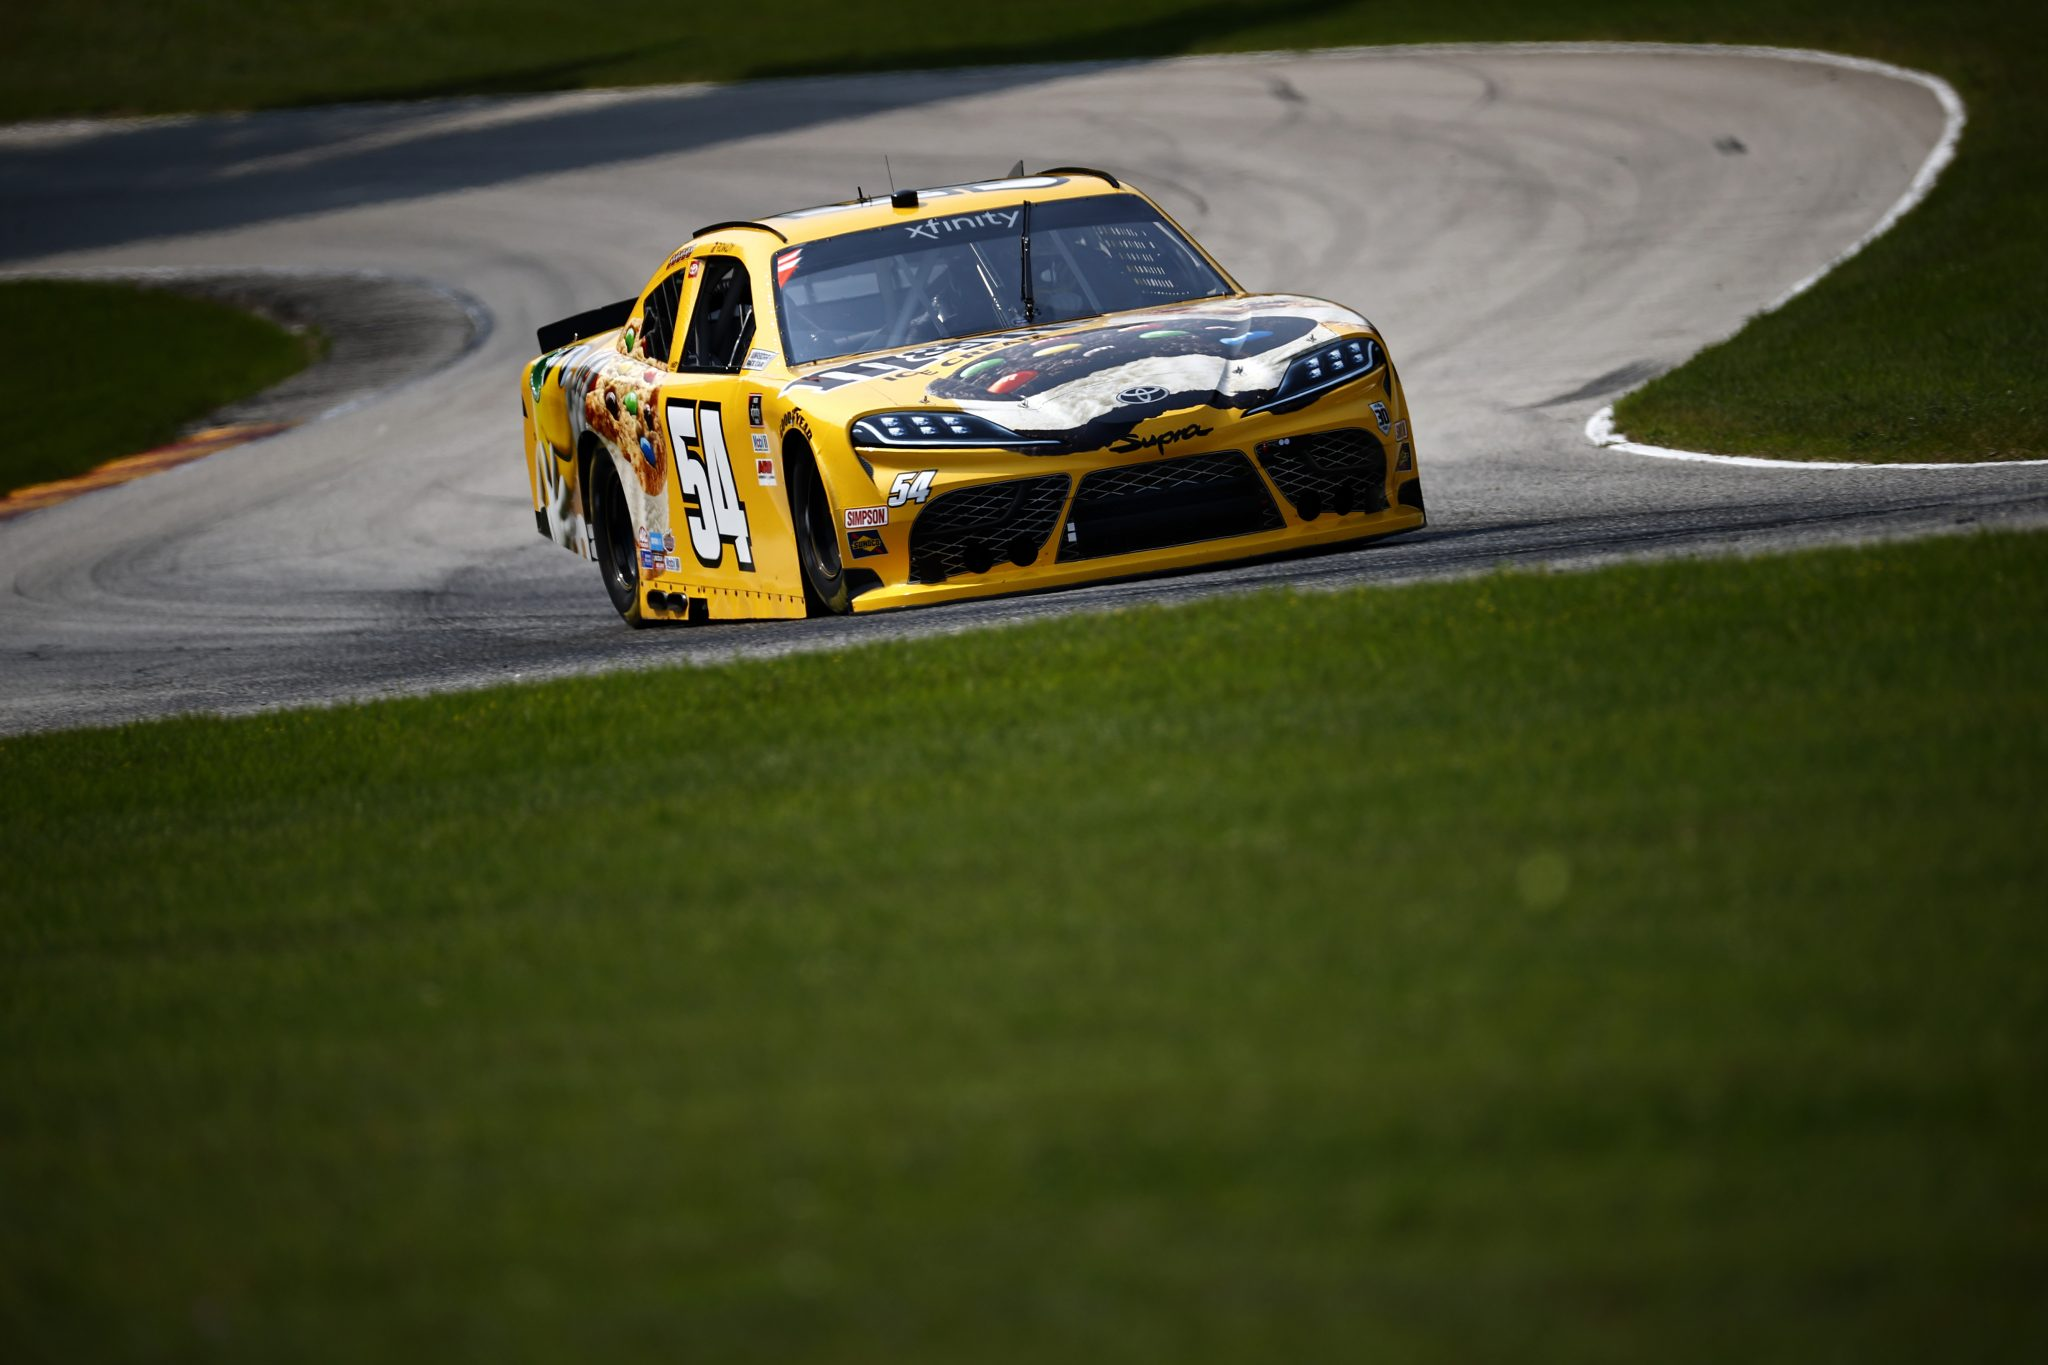 ELKHART LAKE, WISCONSIN - JULY 02: Kyle Busch, driver of the #54 M&M's Ice Cream Toyota, drives during practice for the NASCAR Xfinity Series Henry 180 at Road America on July 02, 2021 in Elkhart Lake, Wisconsin. (Photo by Jared C. Tilton/Getty Images) | Getty Images